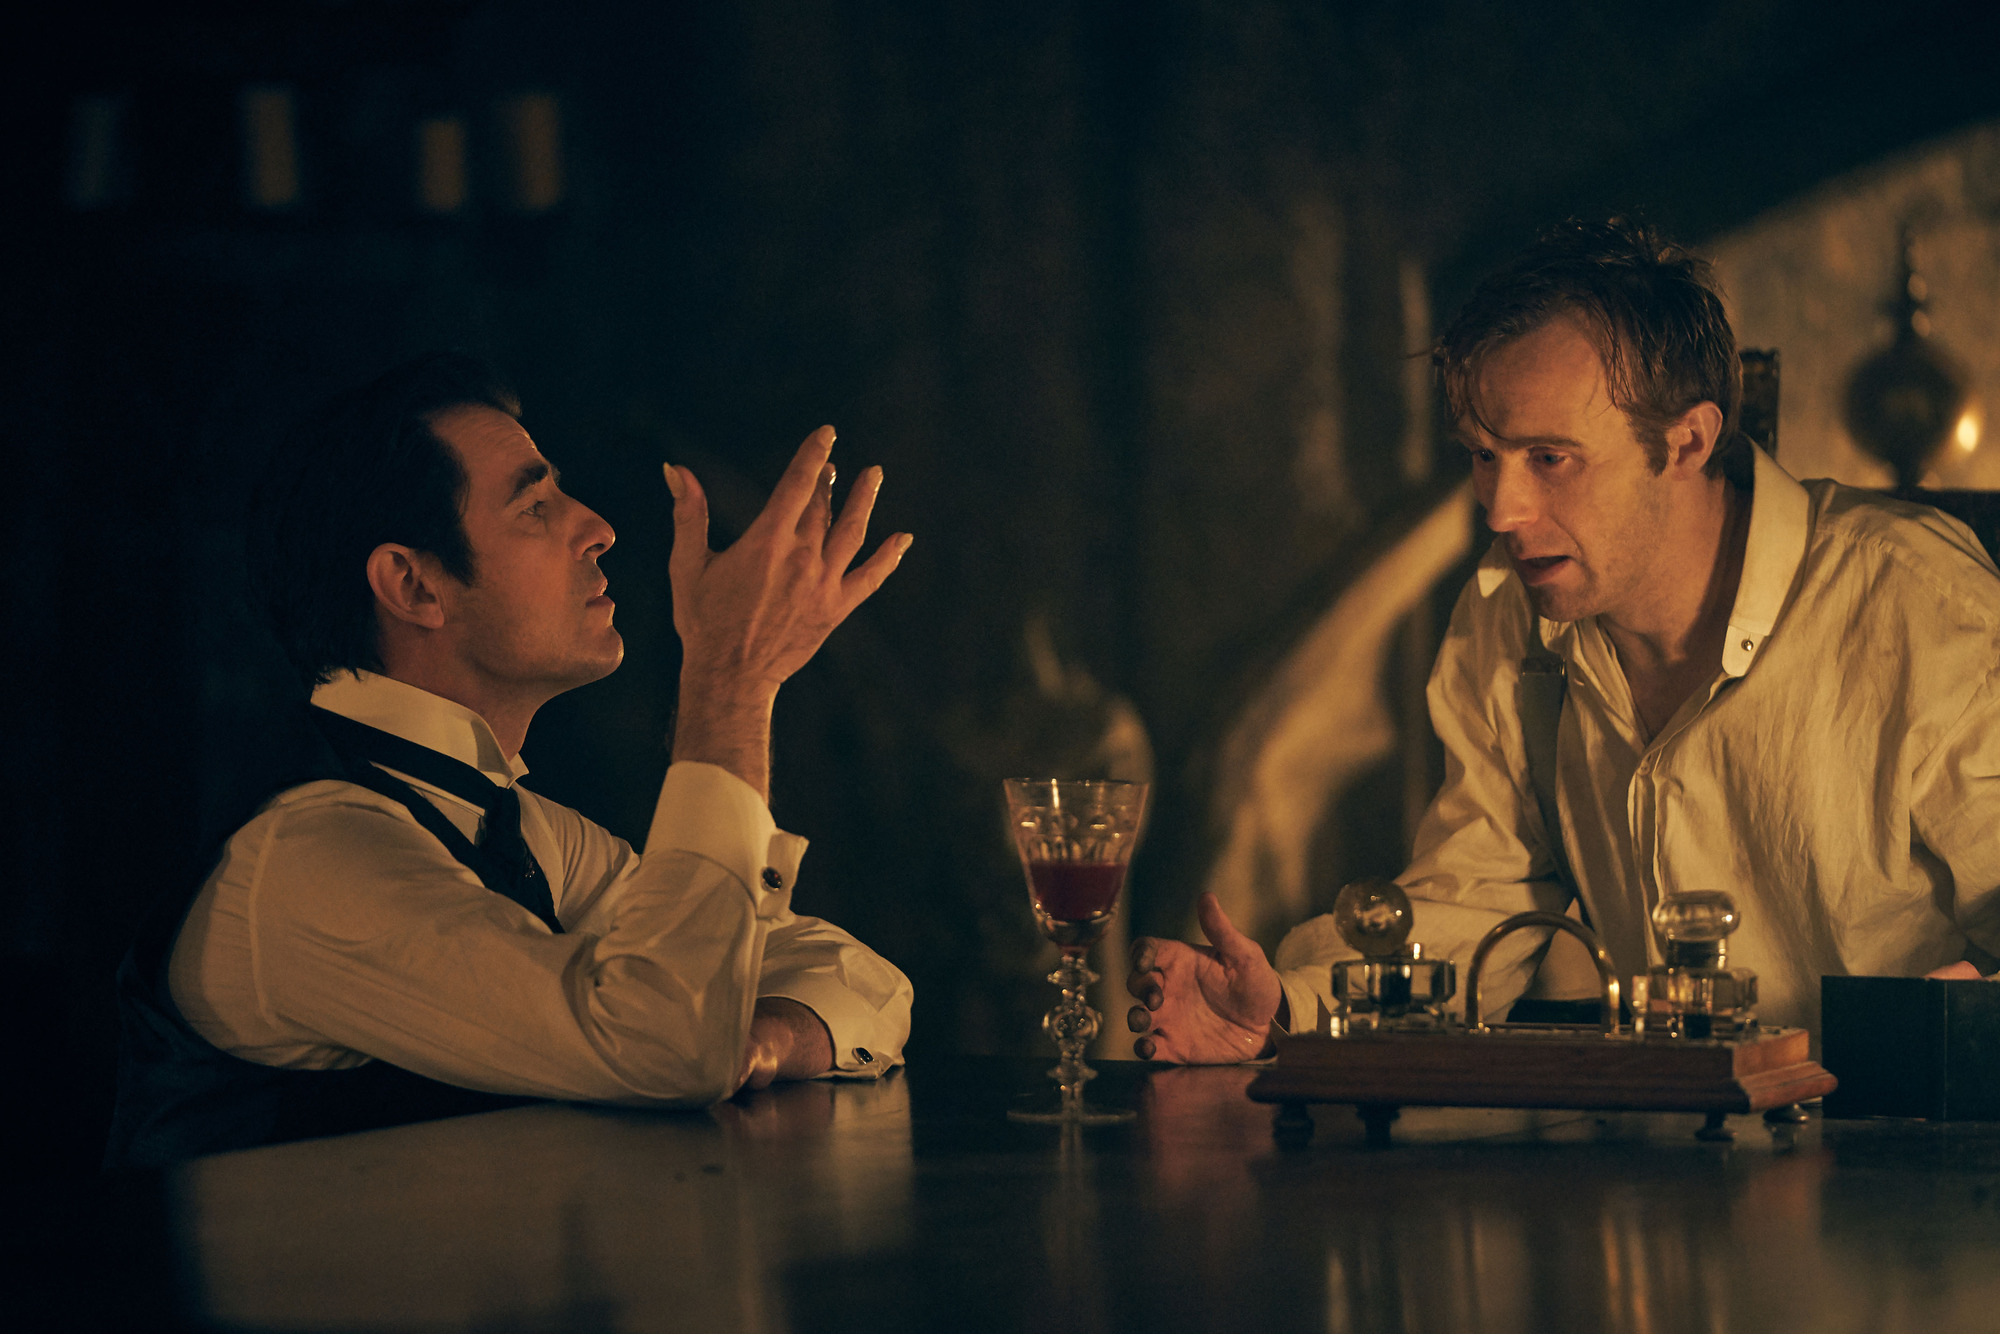 , Dracula Season 2 Release Date And What Is Storyline?